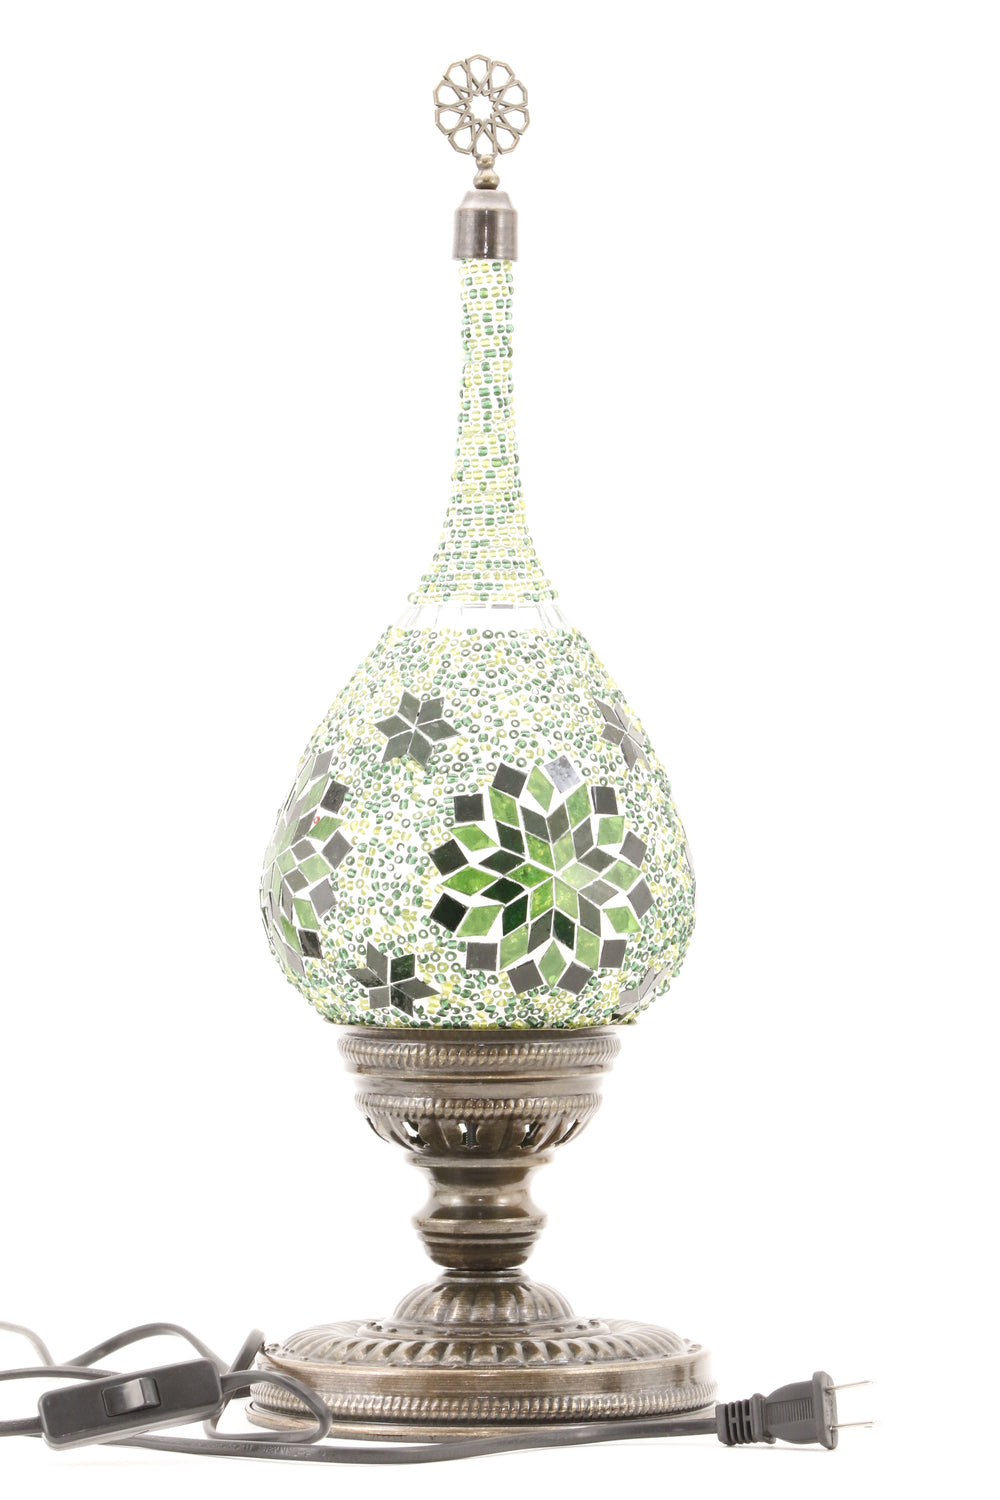 TEAR DROP SHAPED TURKISH MOSAIC TABE LAMP GREEN-TURNED OFF